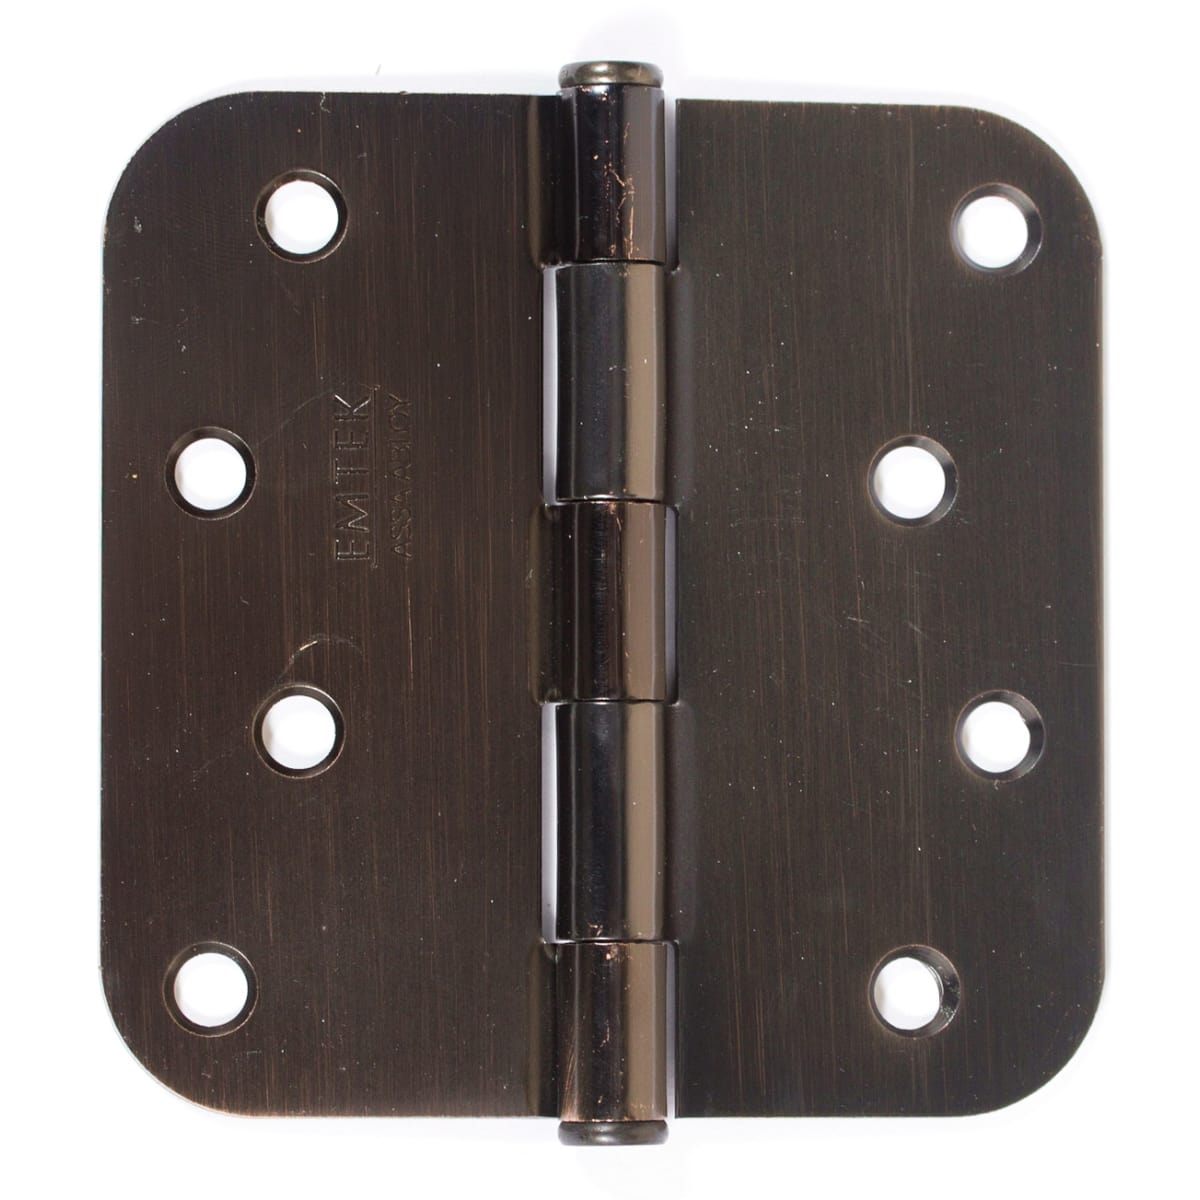 "Emtek 4"" x 4"" Plain Bearing 5/8"" Radius Corners Mortise Hinge - Pair"